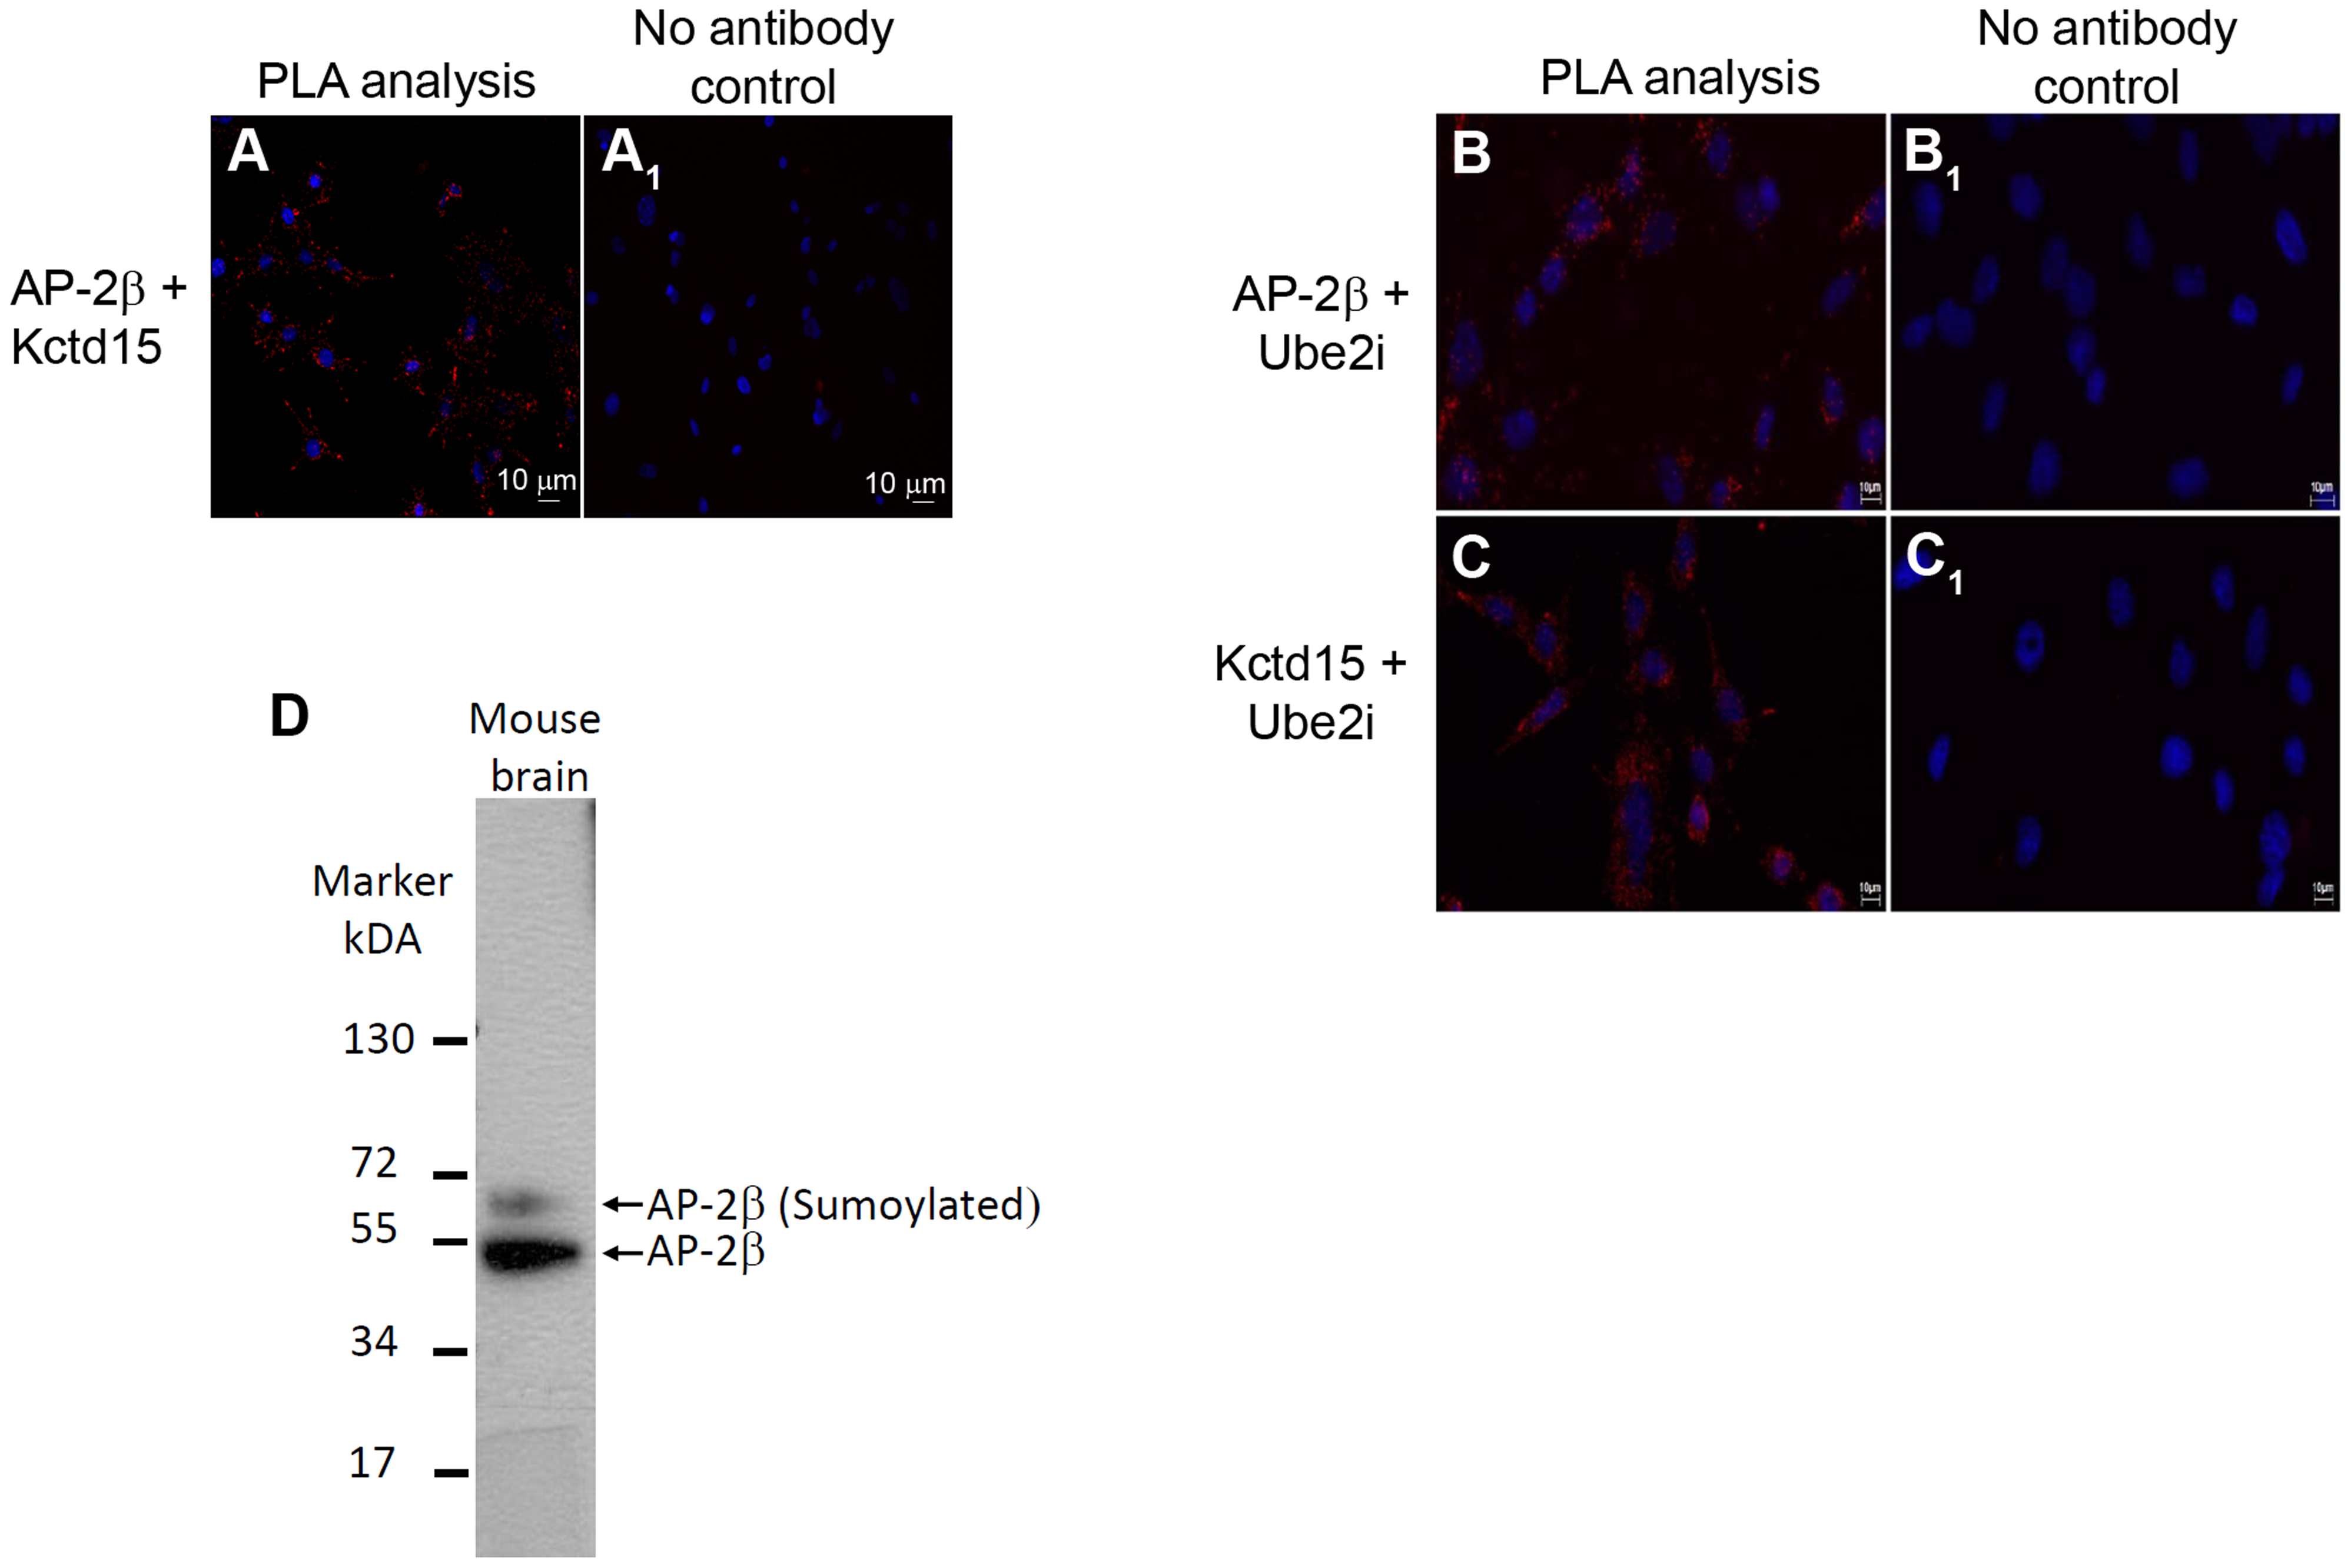 Detection of AP-2β and Kctd15 interactions in mHypoE-N25/2 cells using PLA.